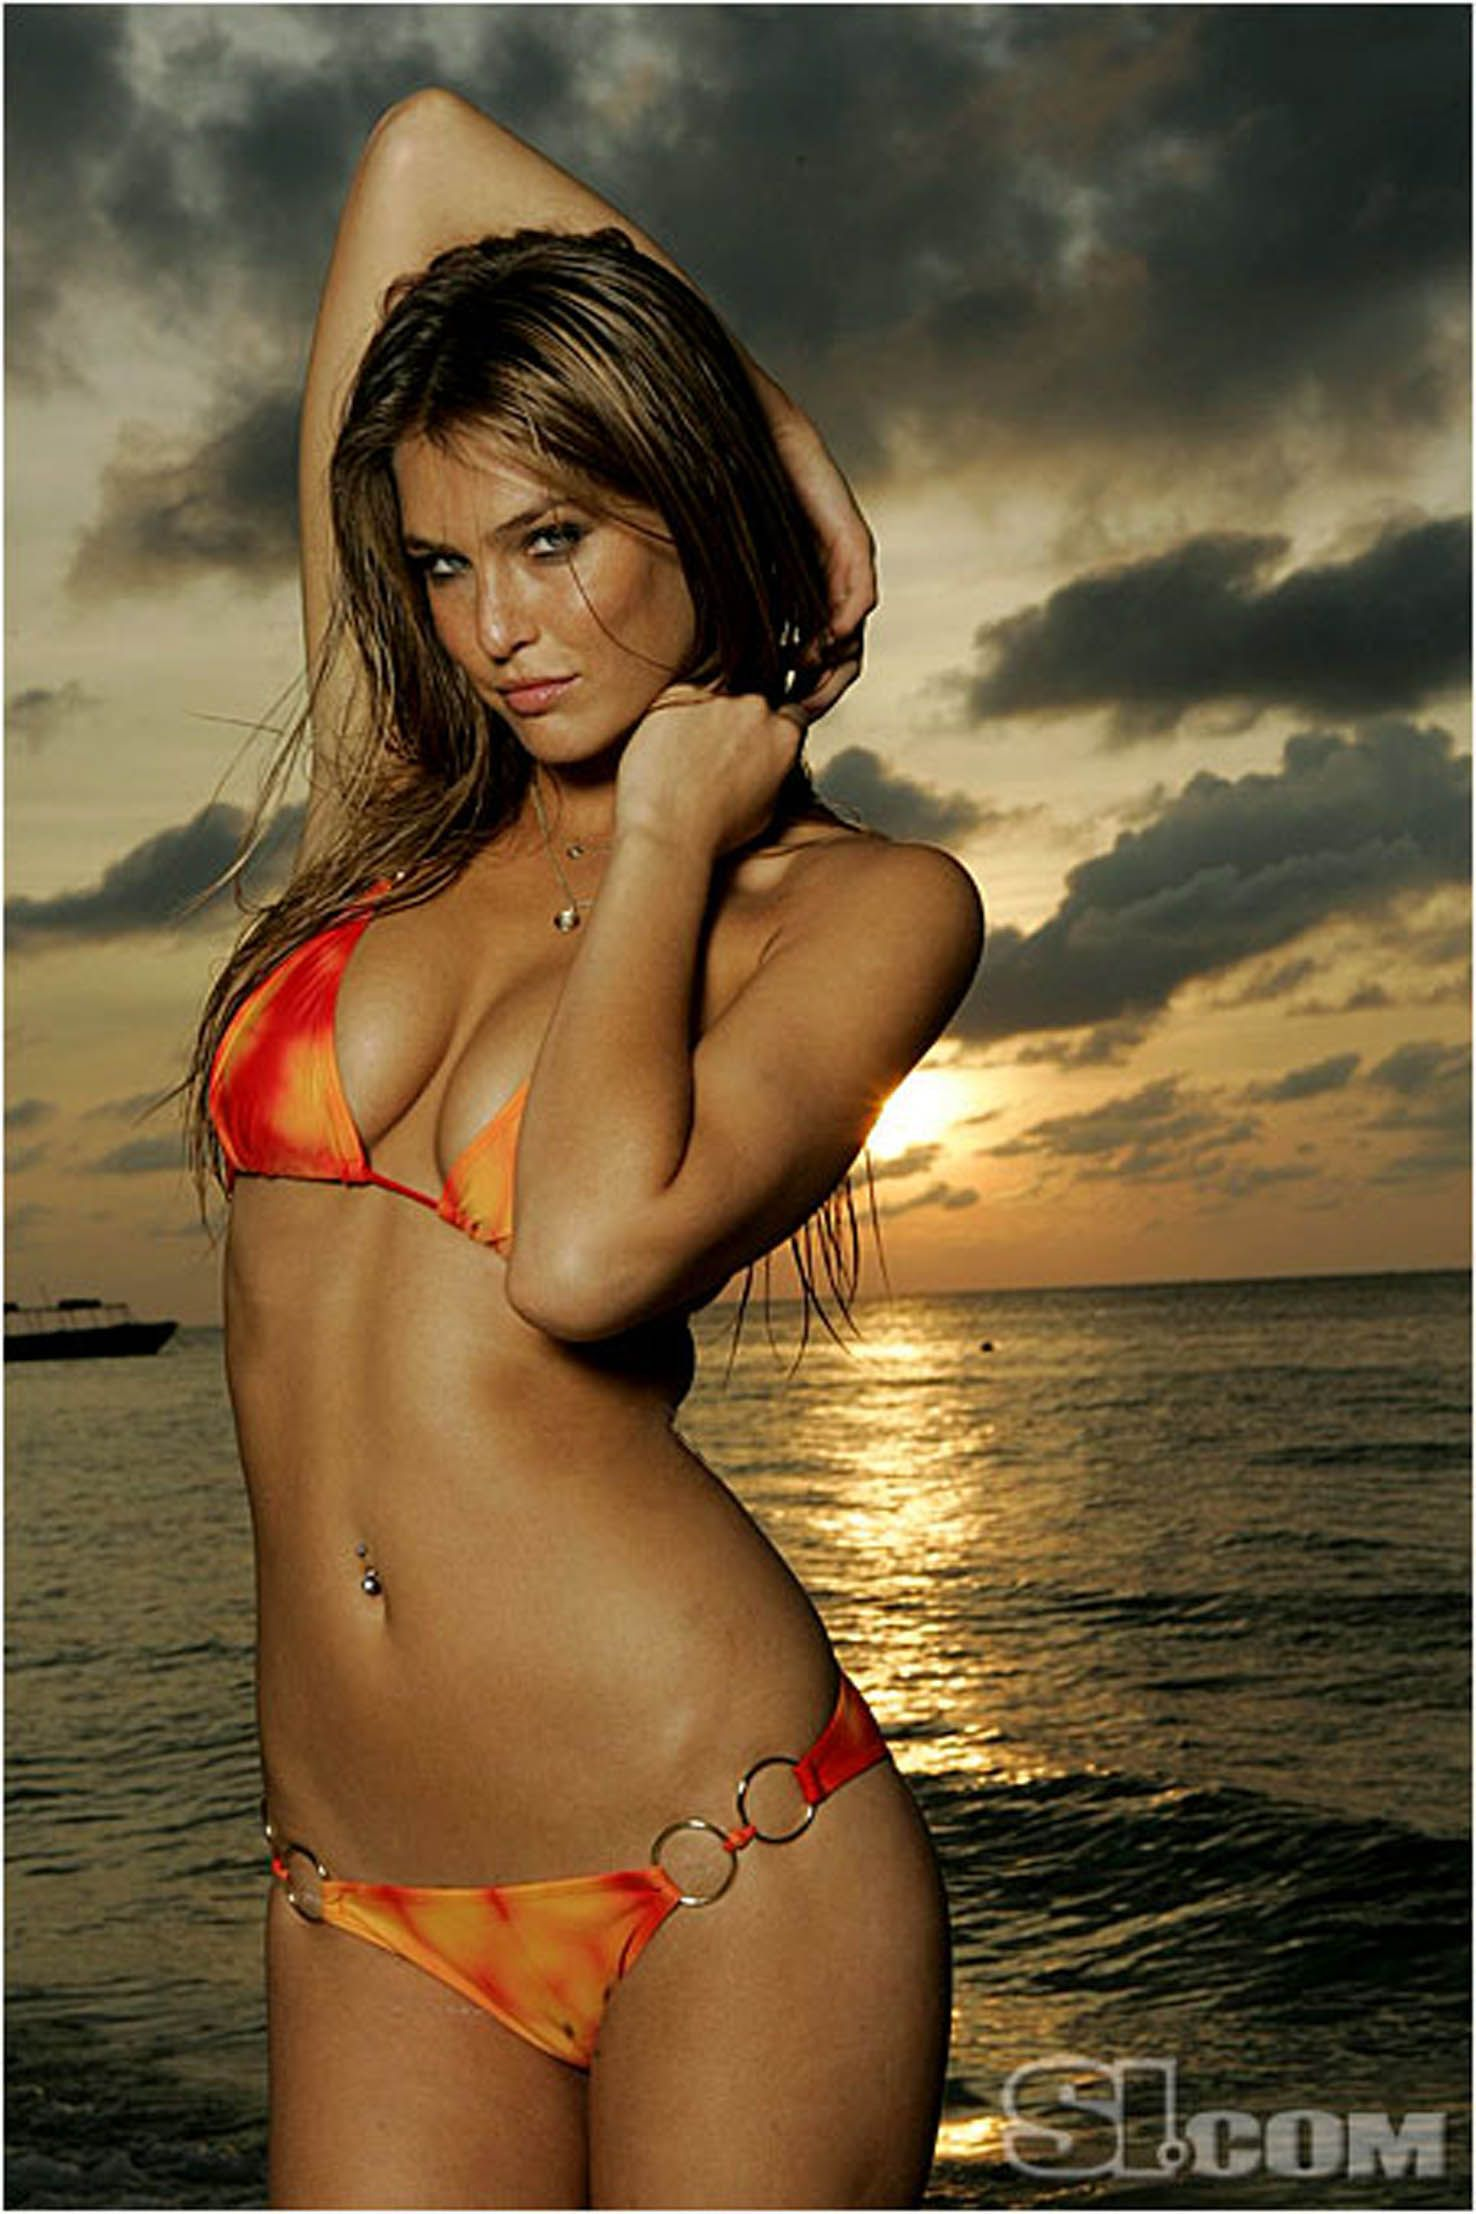 Bar refaeli gets wet in the maldives